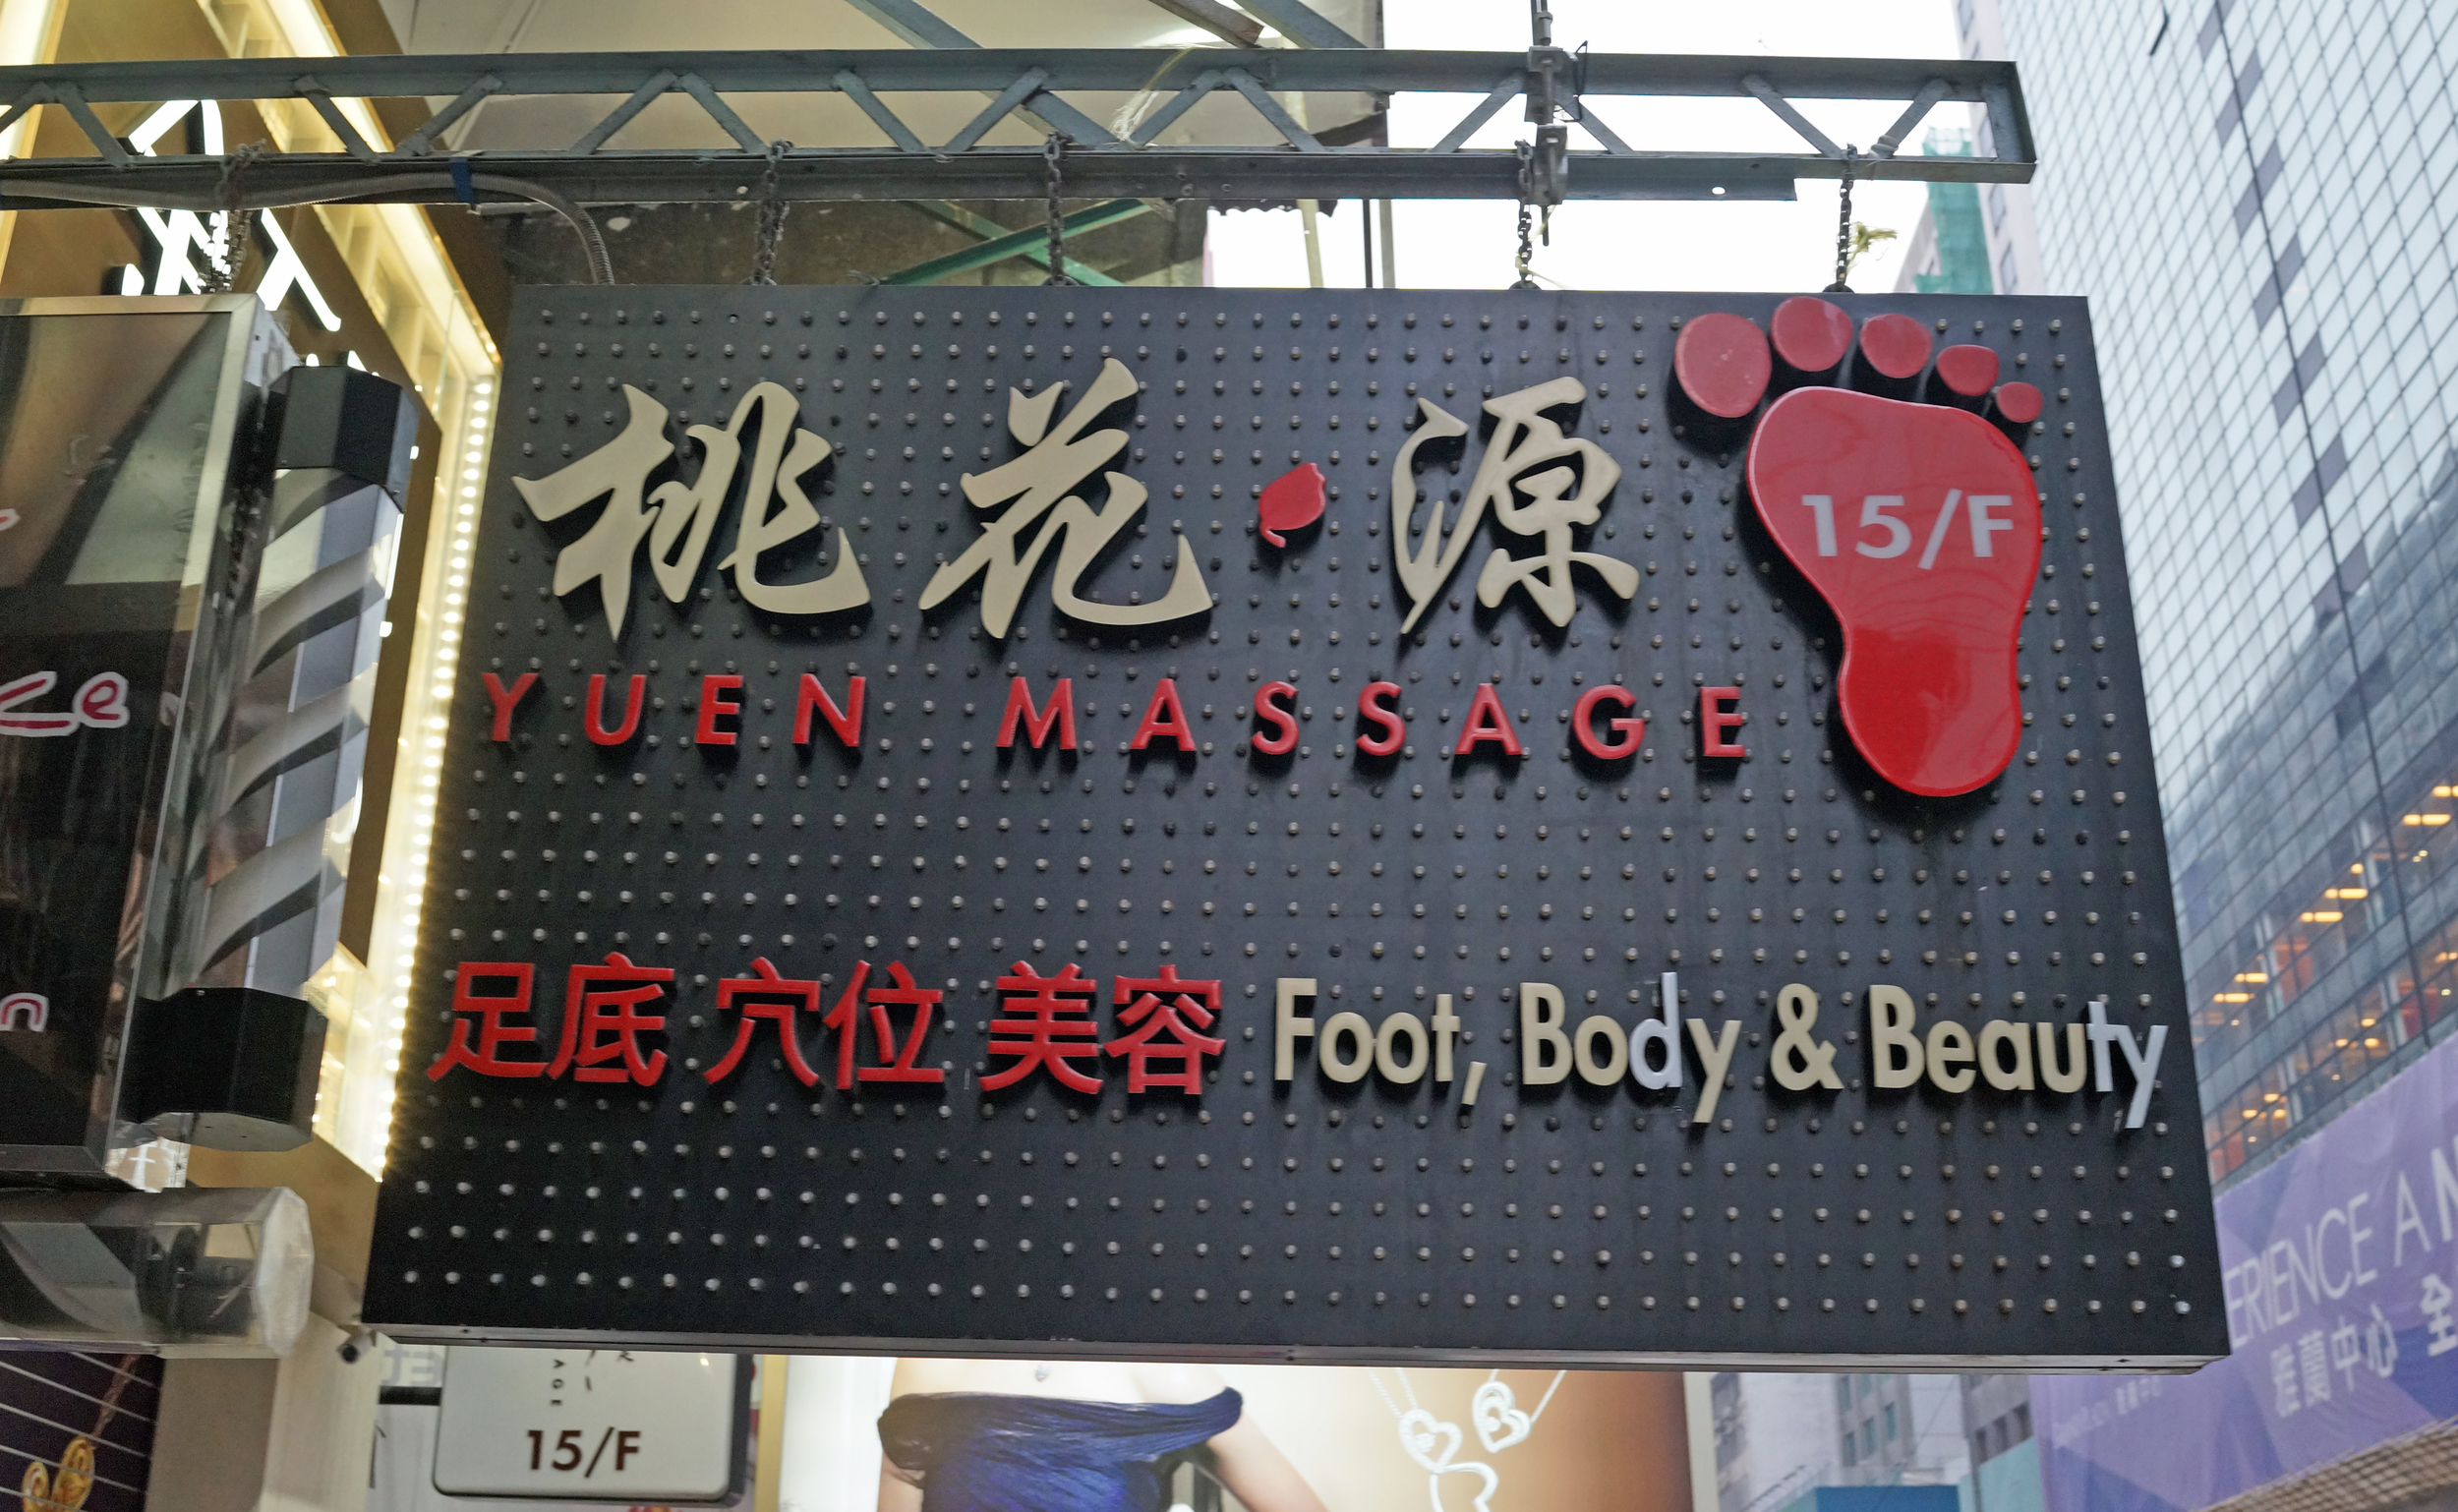 A fairly typical massage parlour - foot, body and other bits.